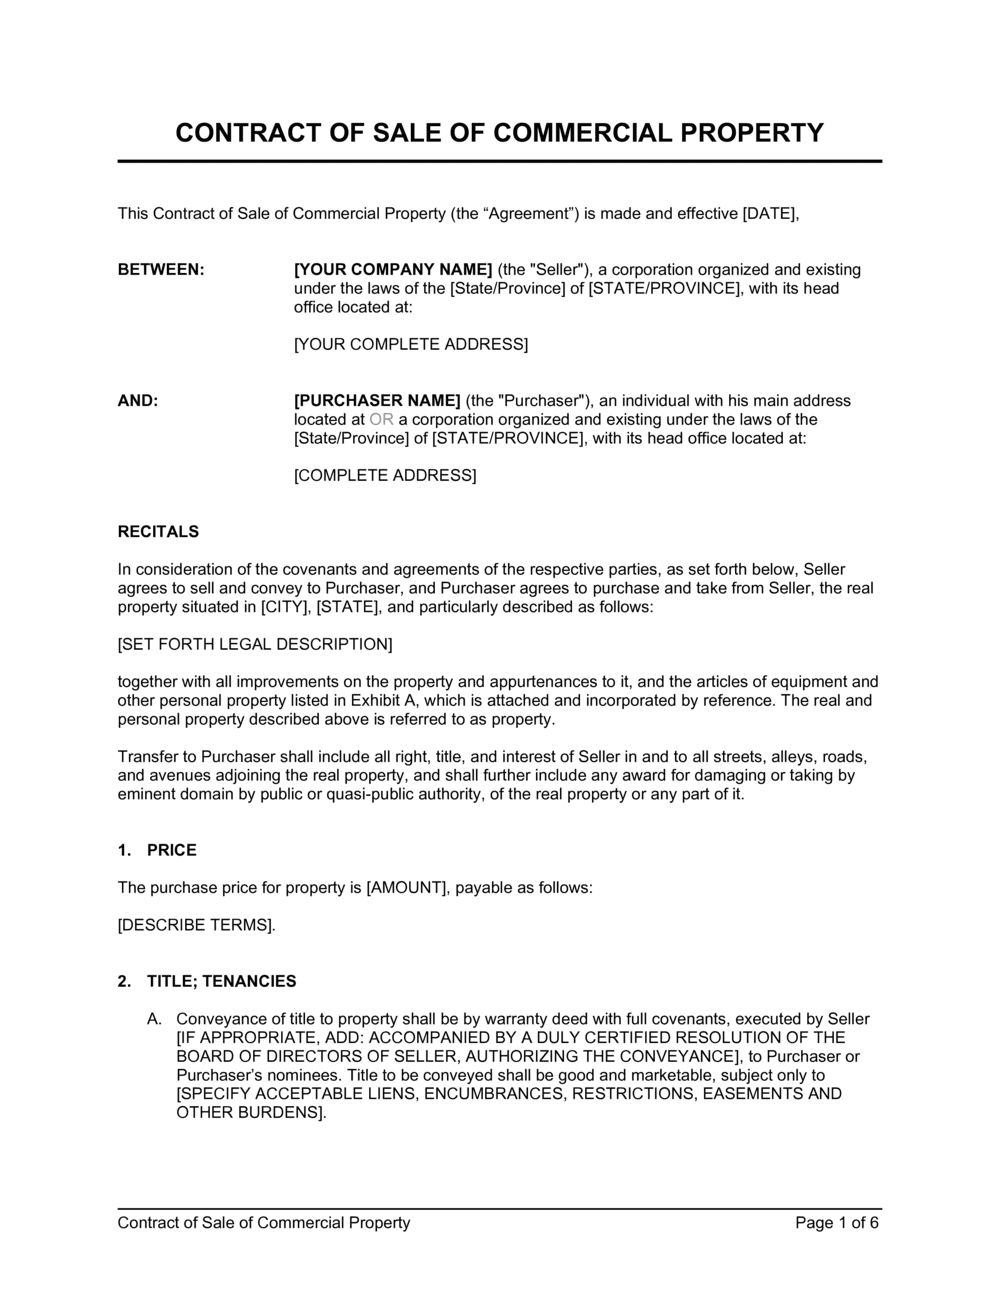 Contract of Sale of Commercial Property Template   by Business in ...